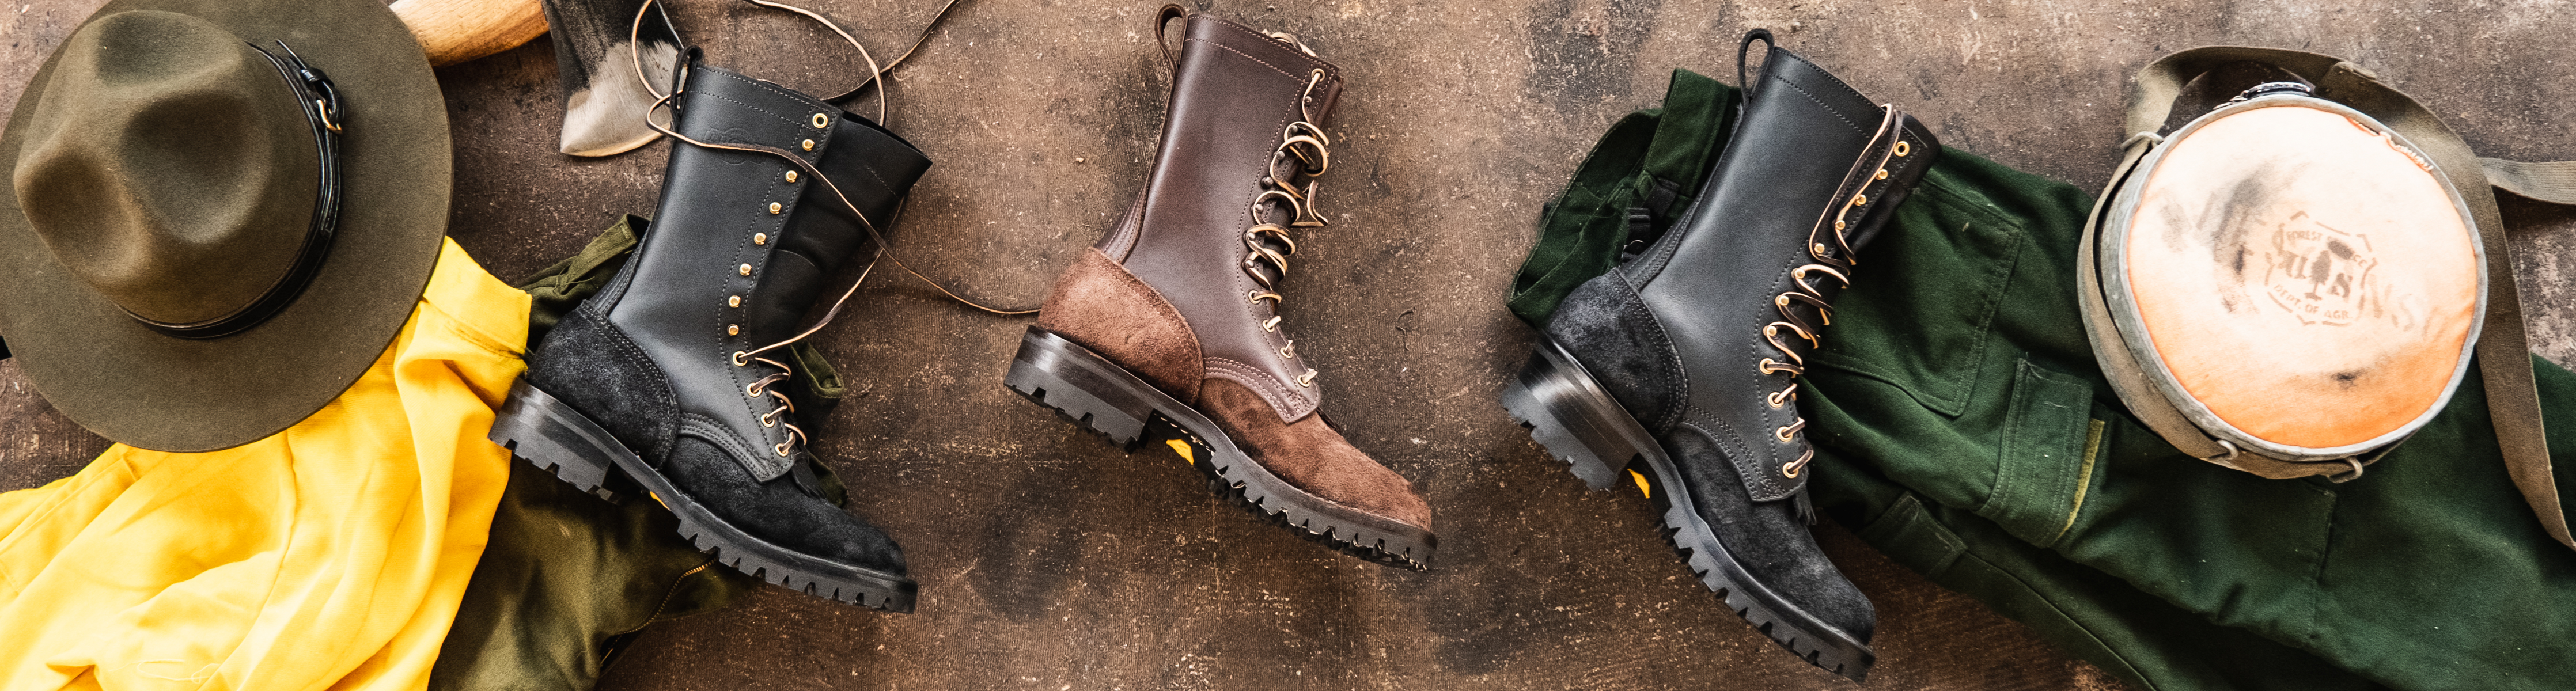 USDA Forest Service Wildland Fire Boots - NFPA Certified